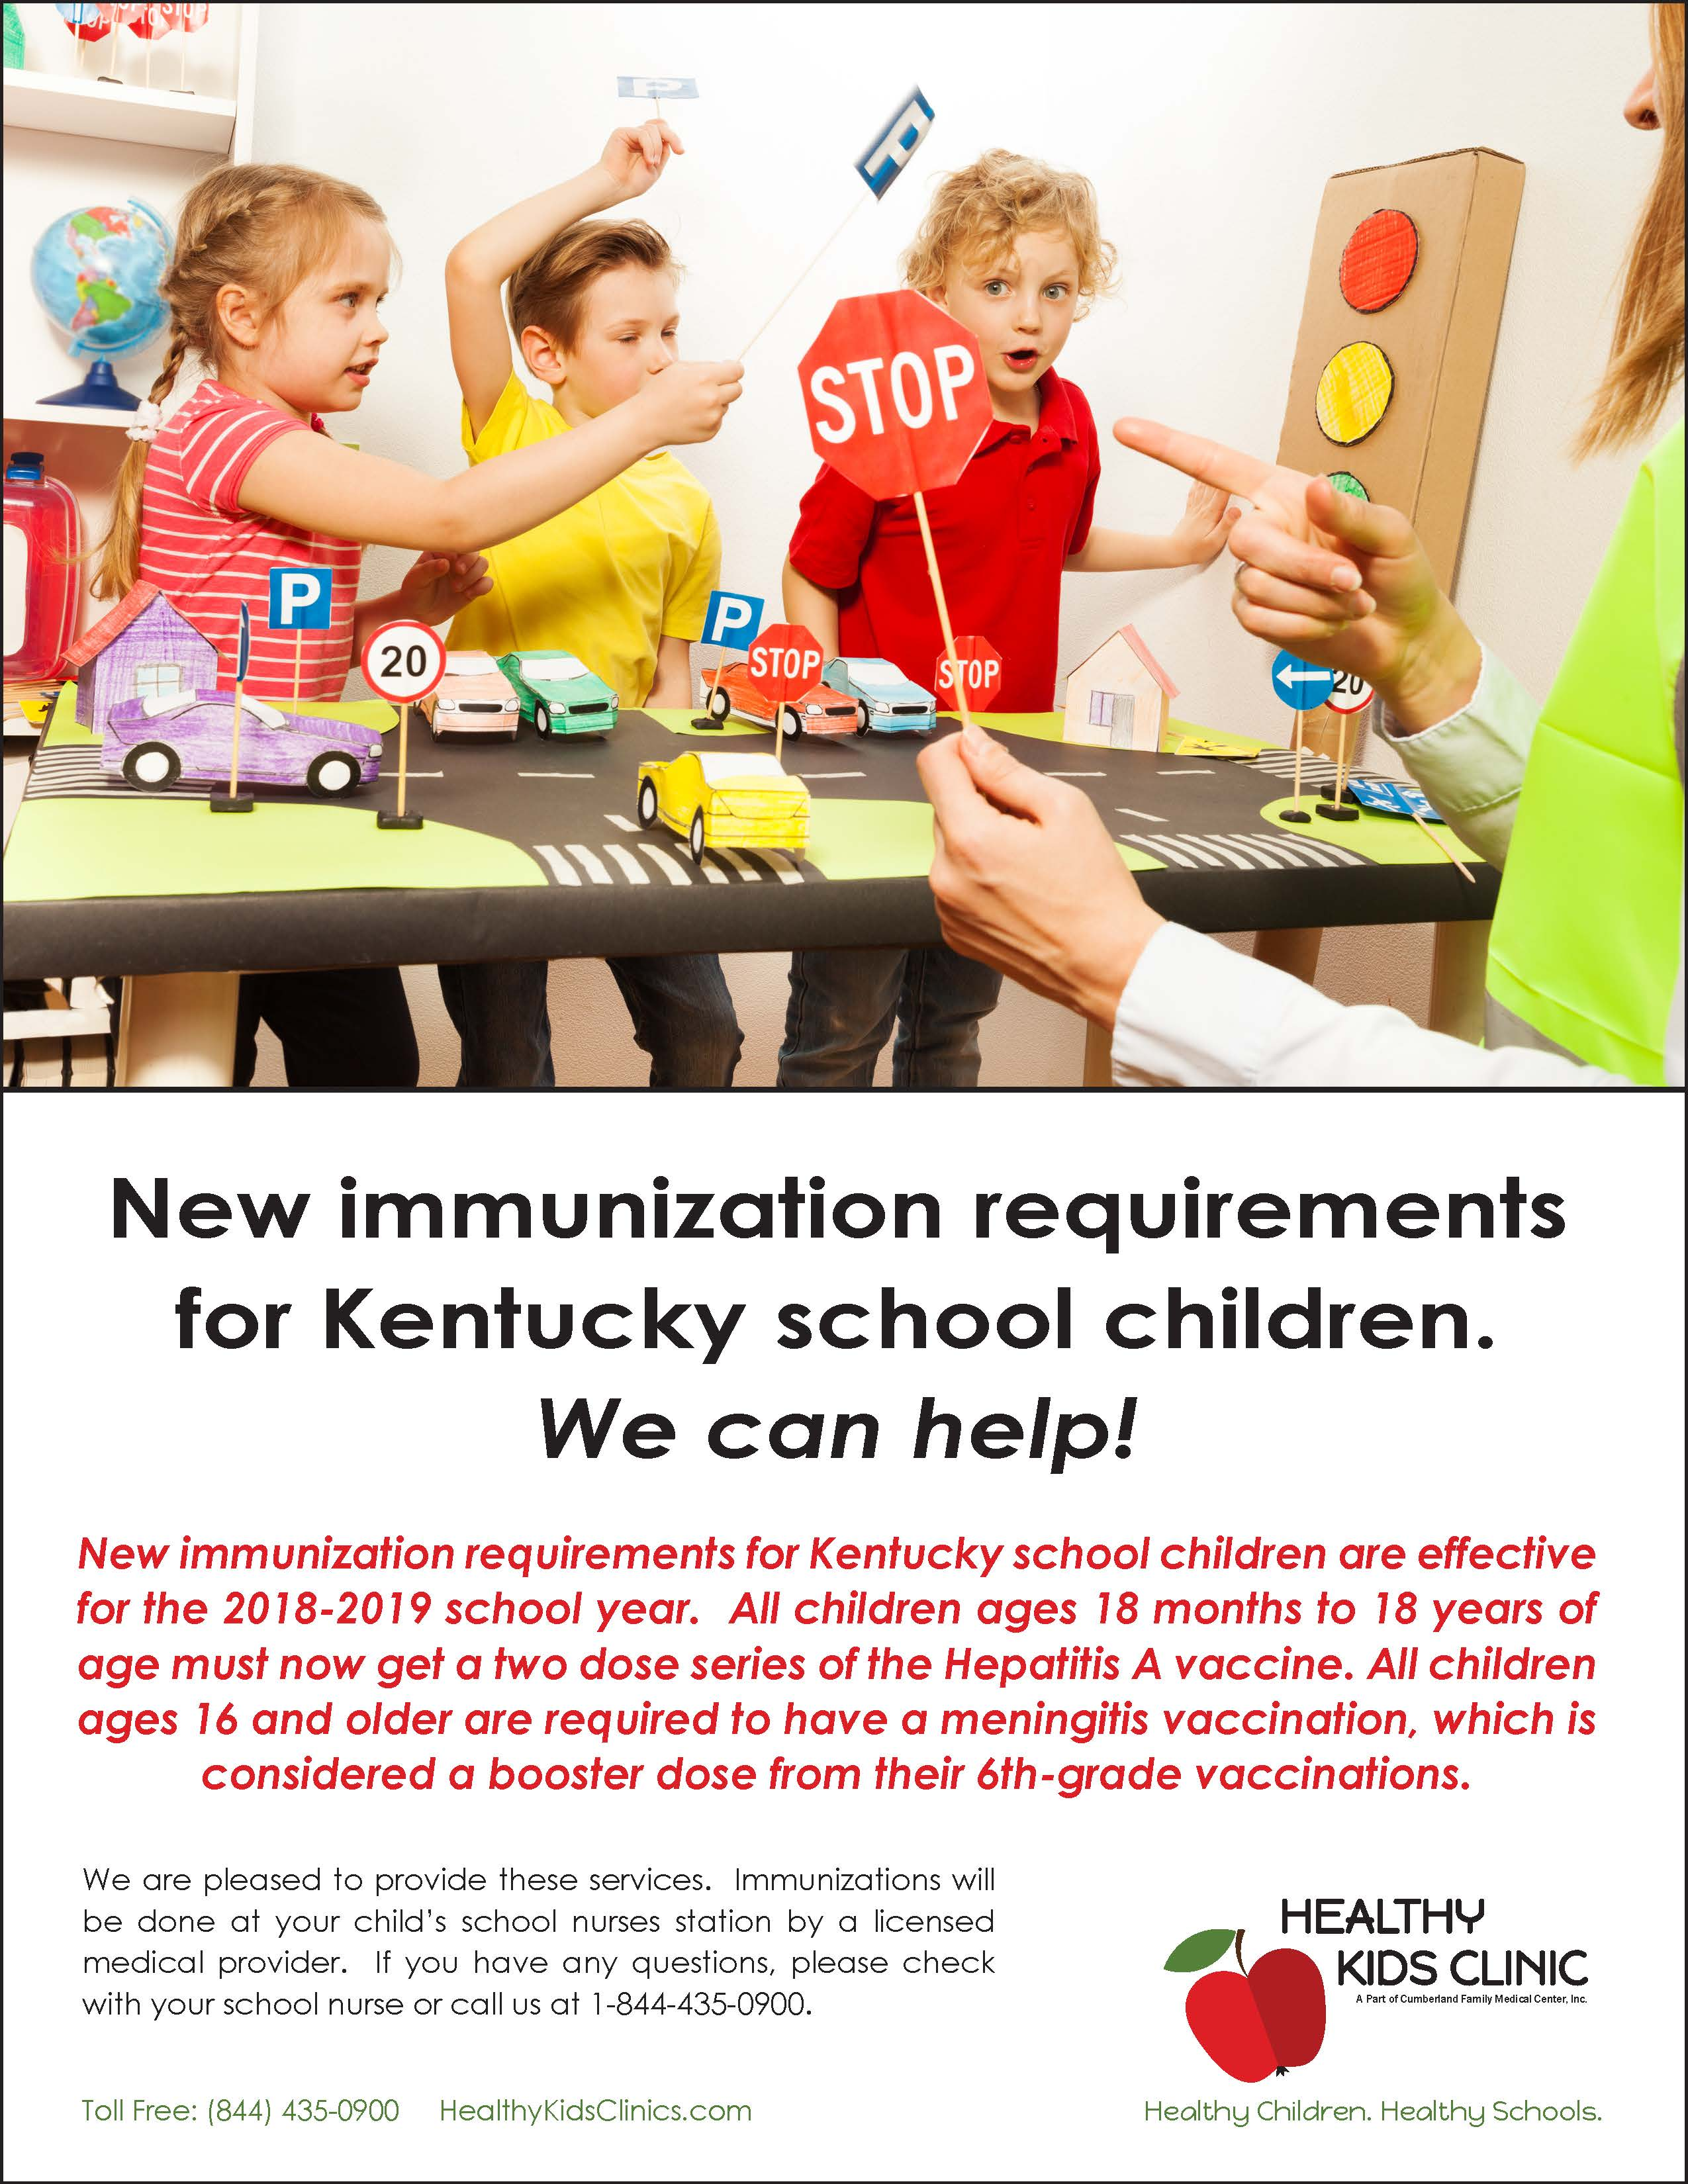 New immunization requirements for Kentucky school children are effective for the 2018-2019 school year.  Follow this link to learn more.